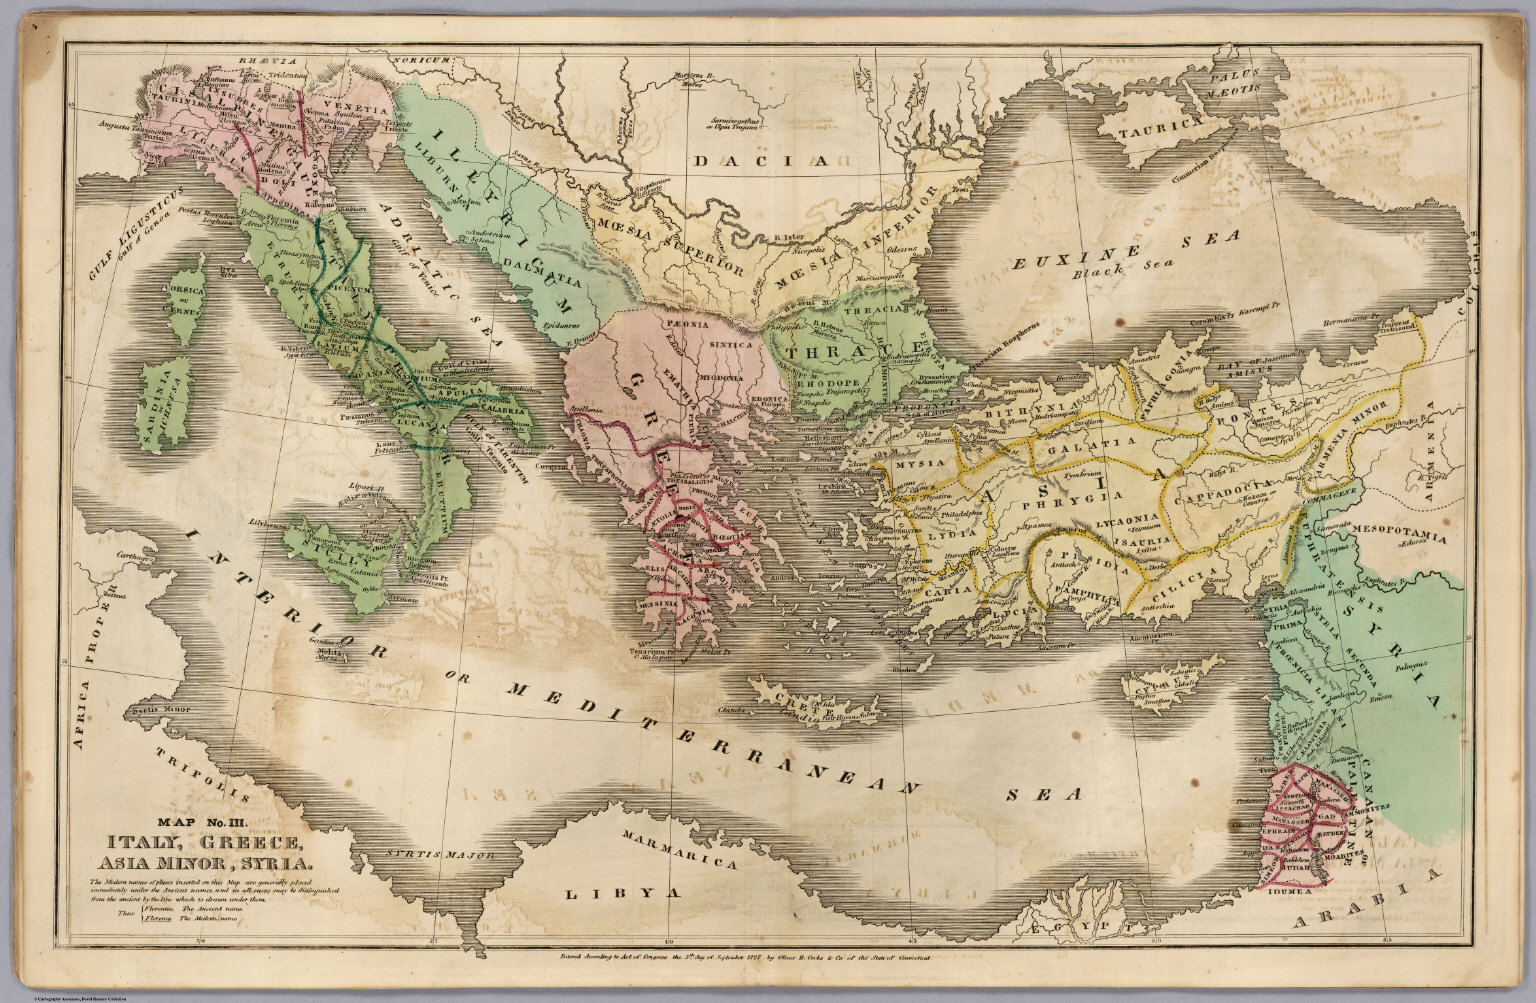 Map No. III. Italy, Greece, Asia Minor, Syria - David Rumsey ...